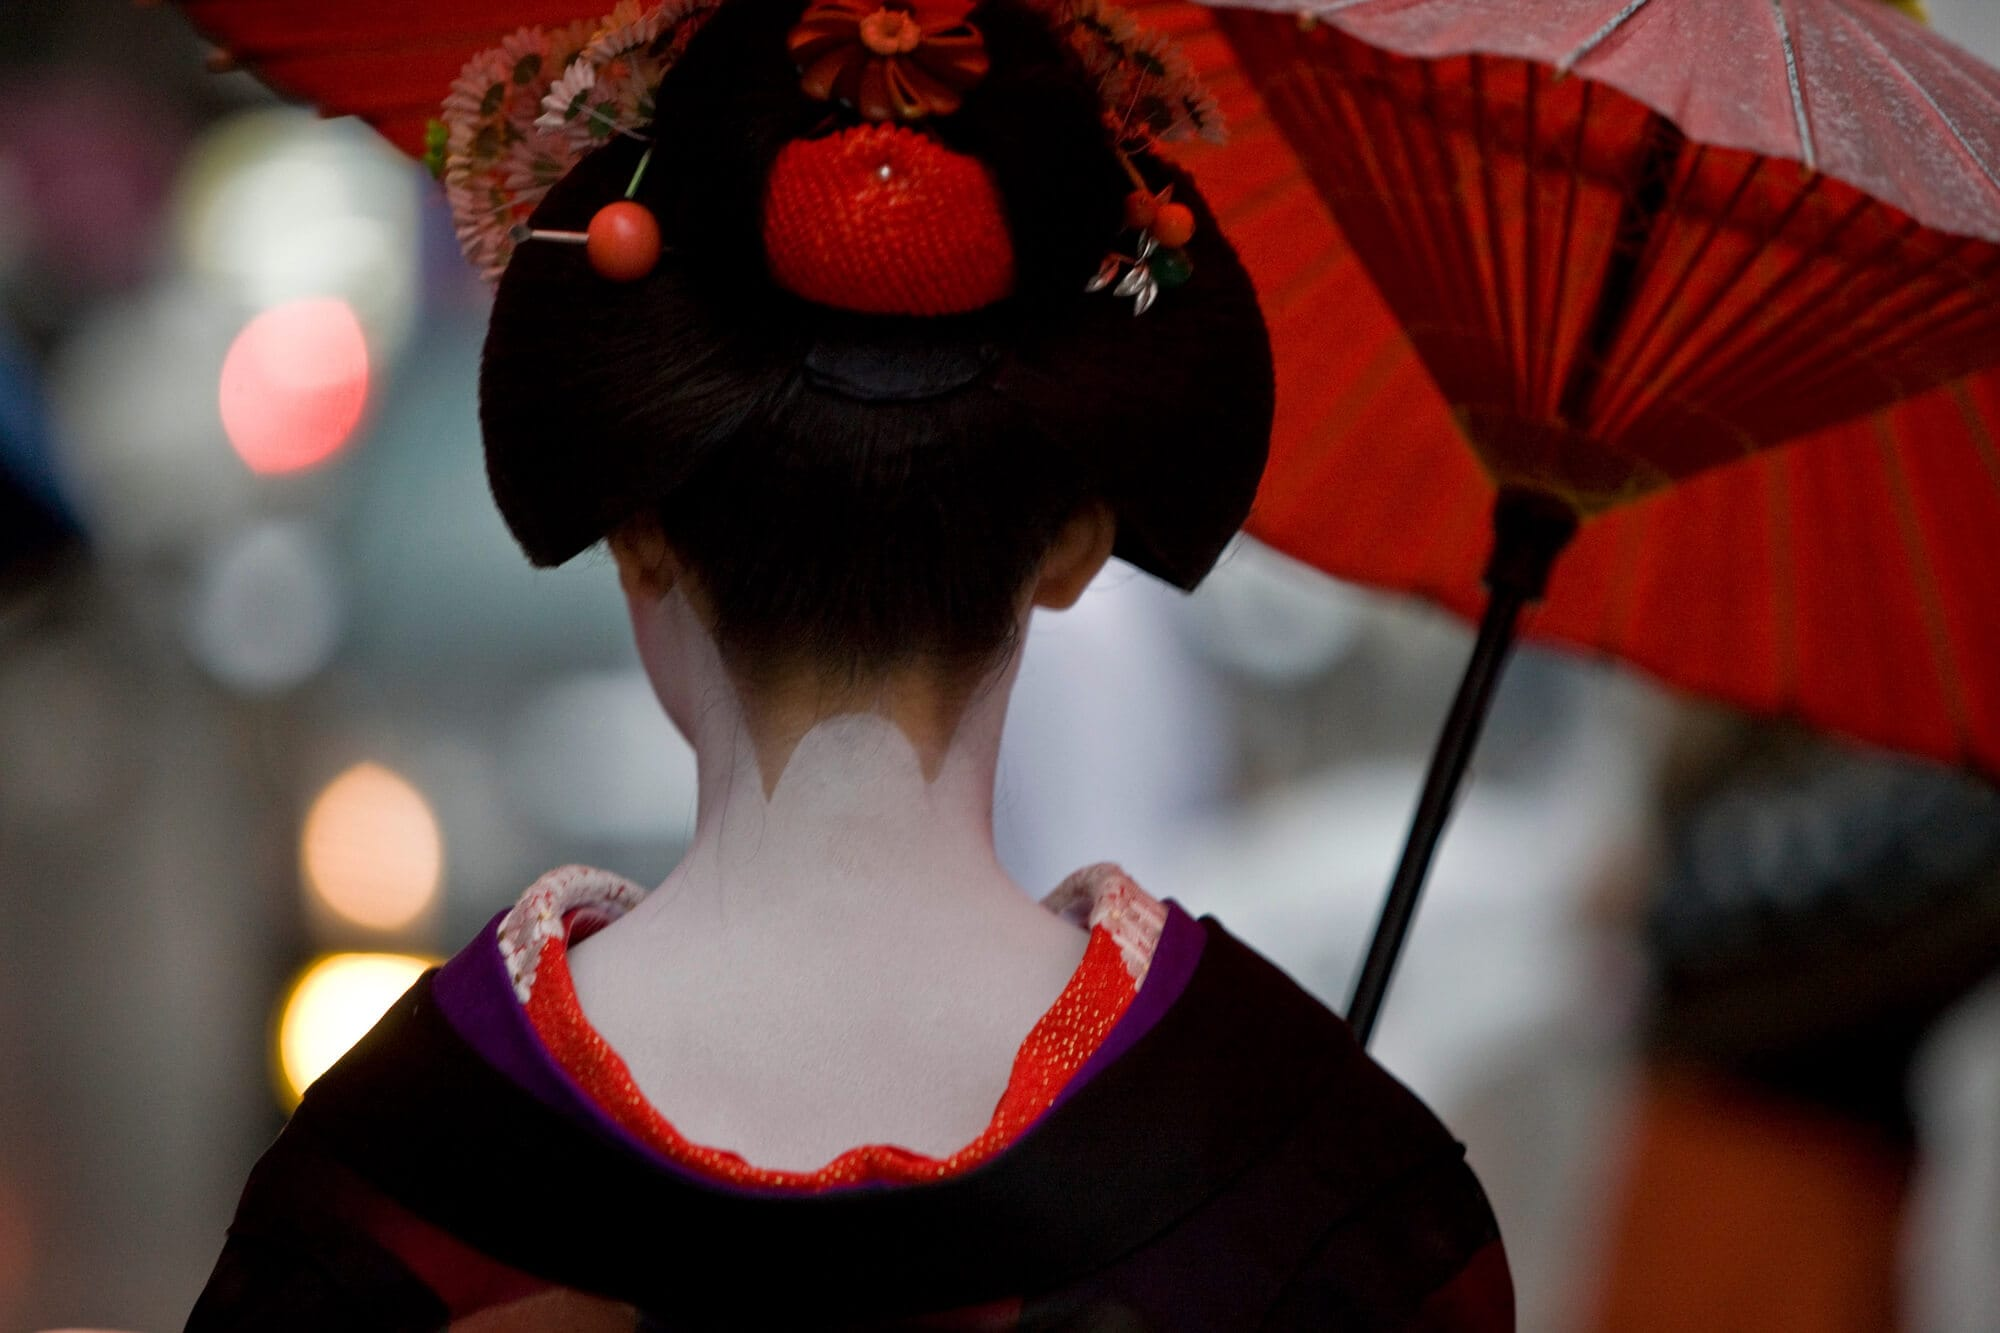 Travel bloggers reveal their favorite experiences in the world - An incredible geisha experience in Japan